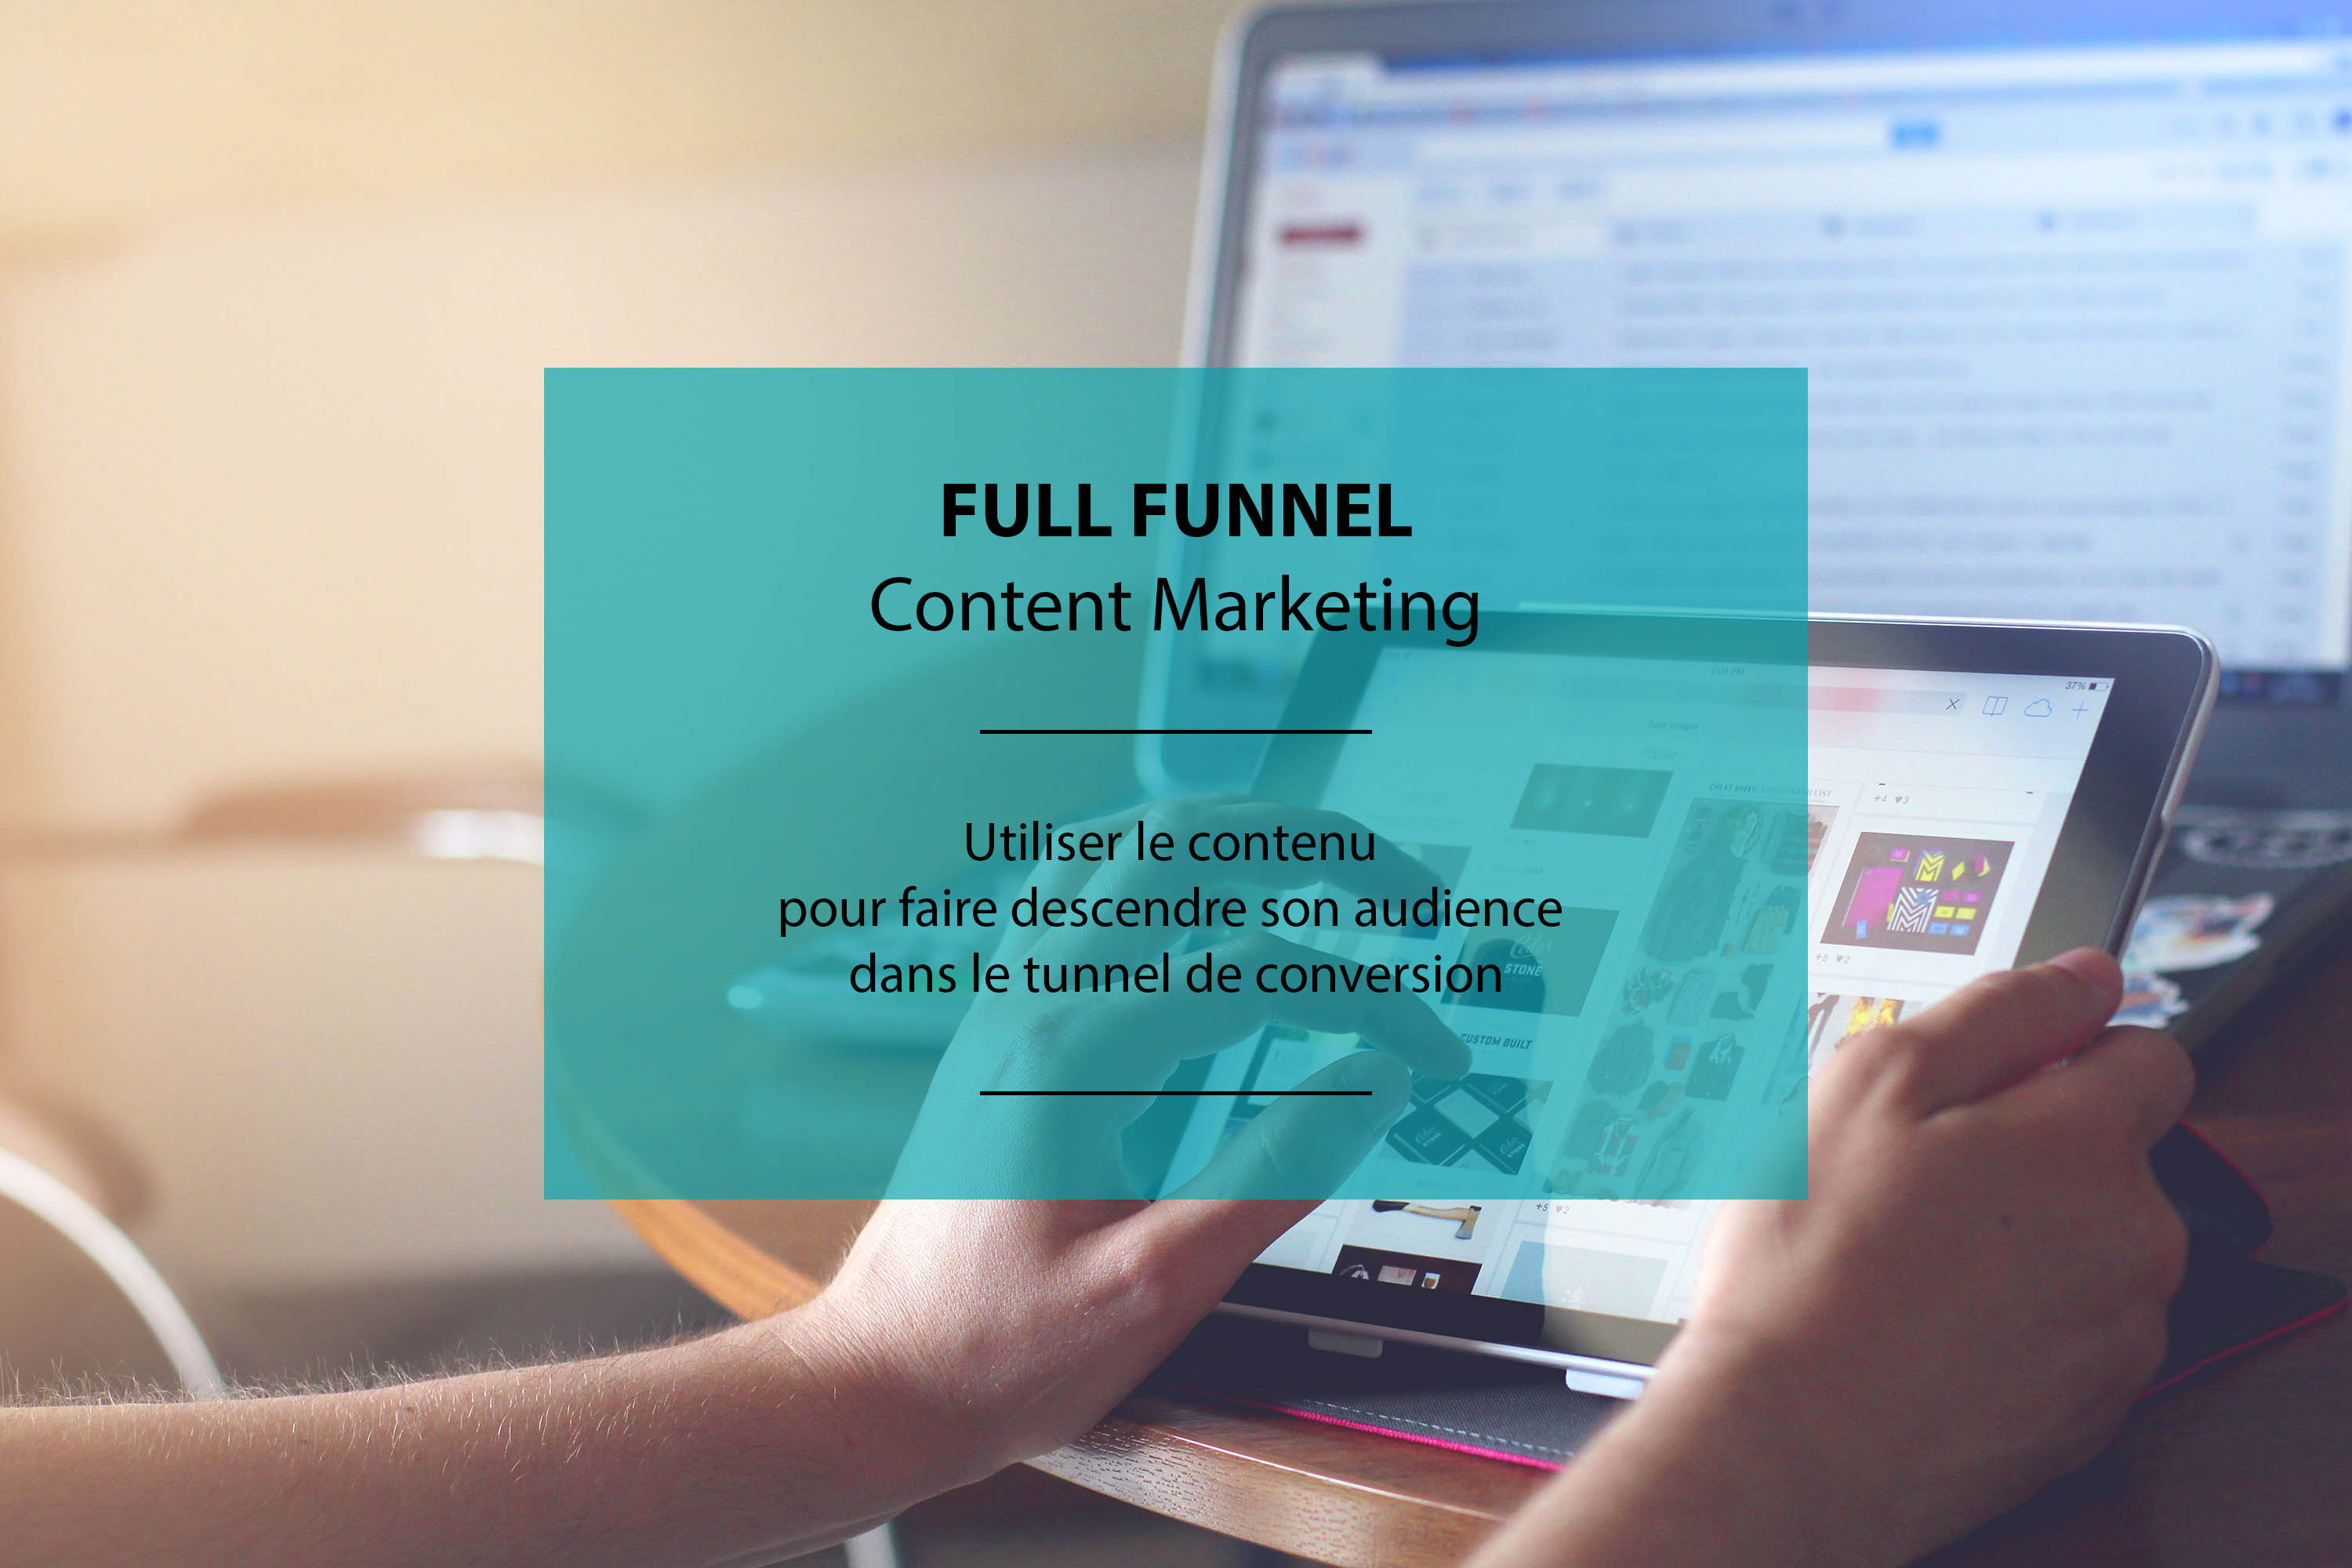 Full Funnel Content Marketing